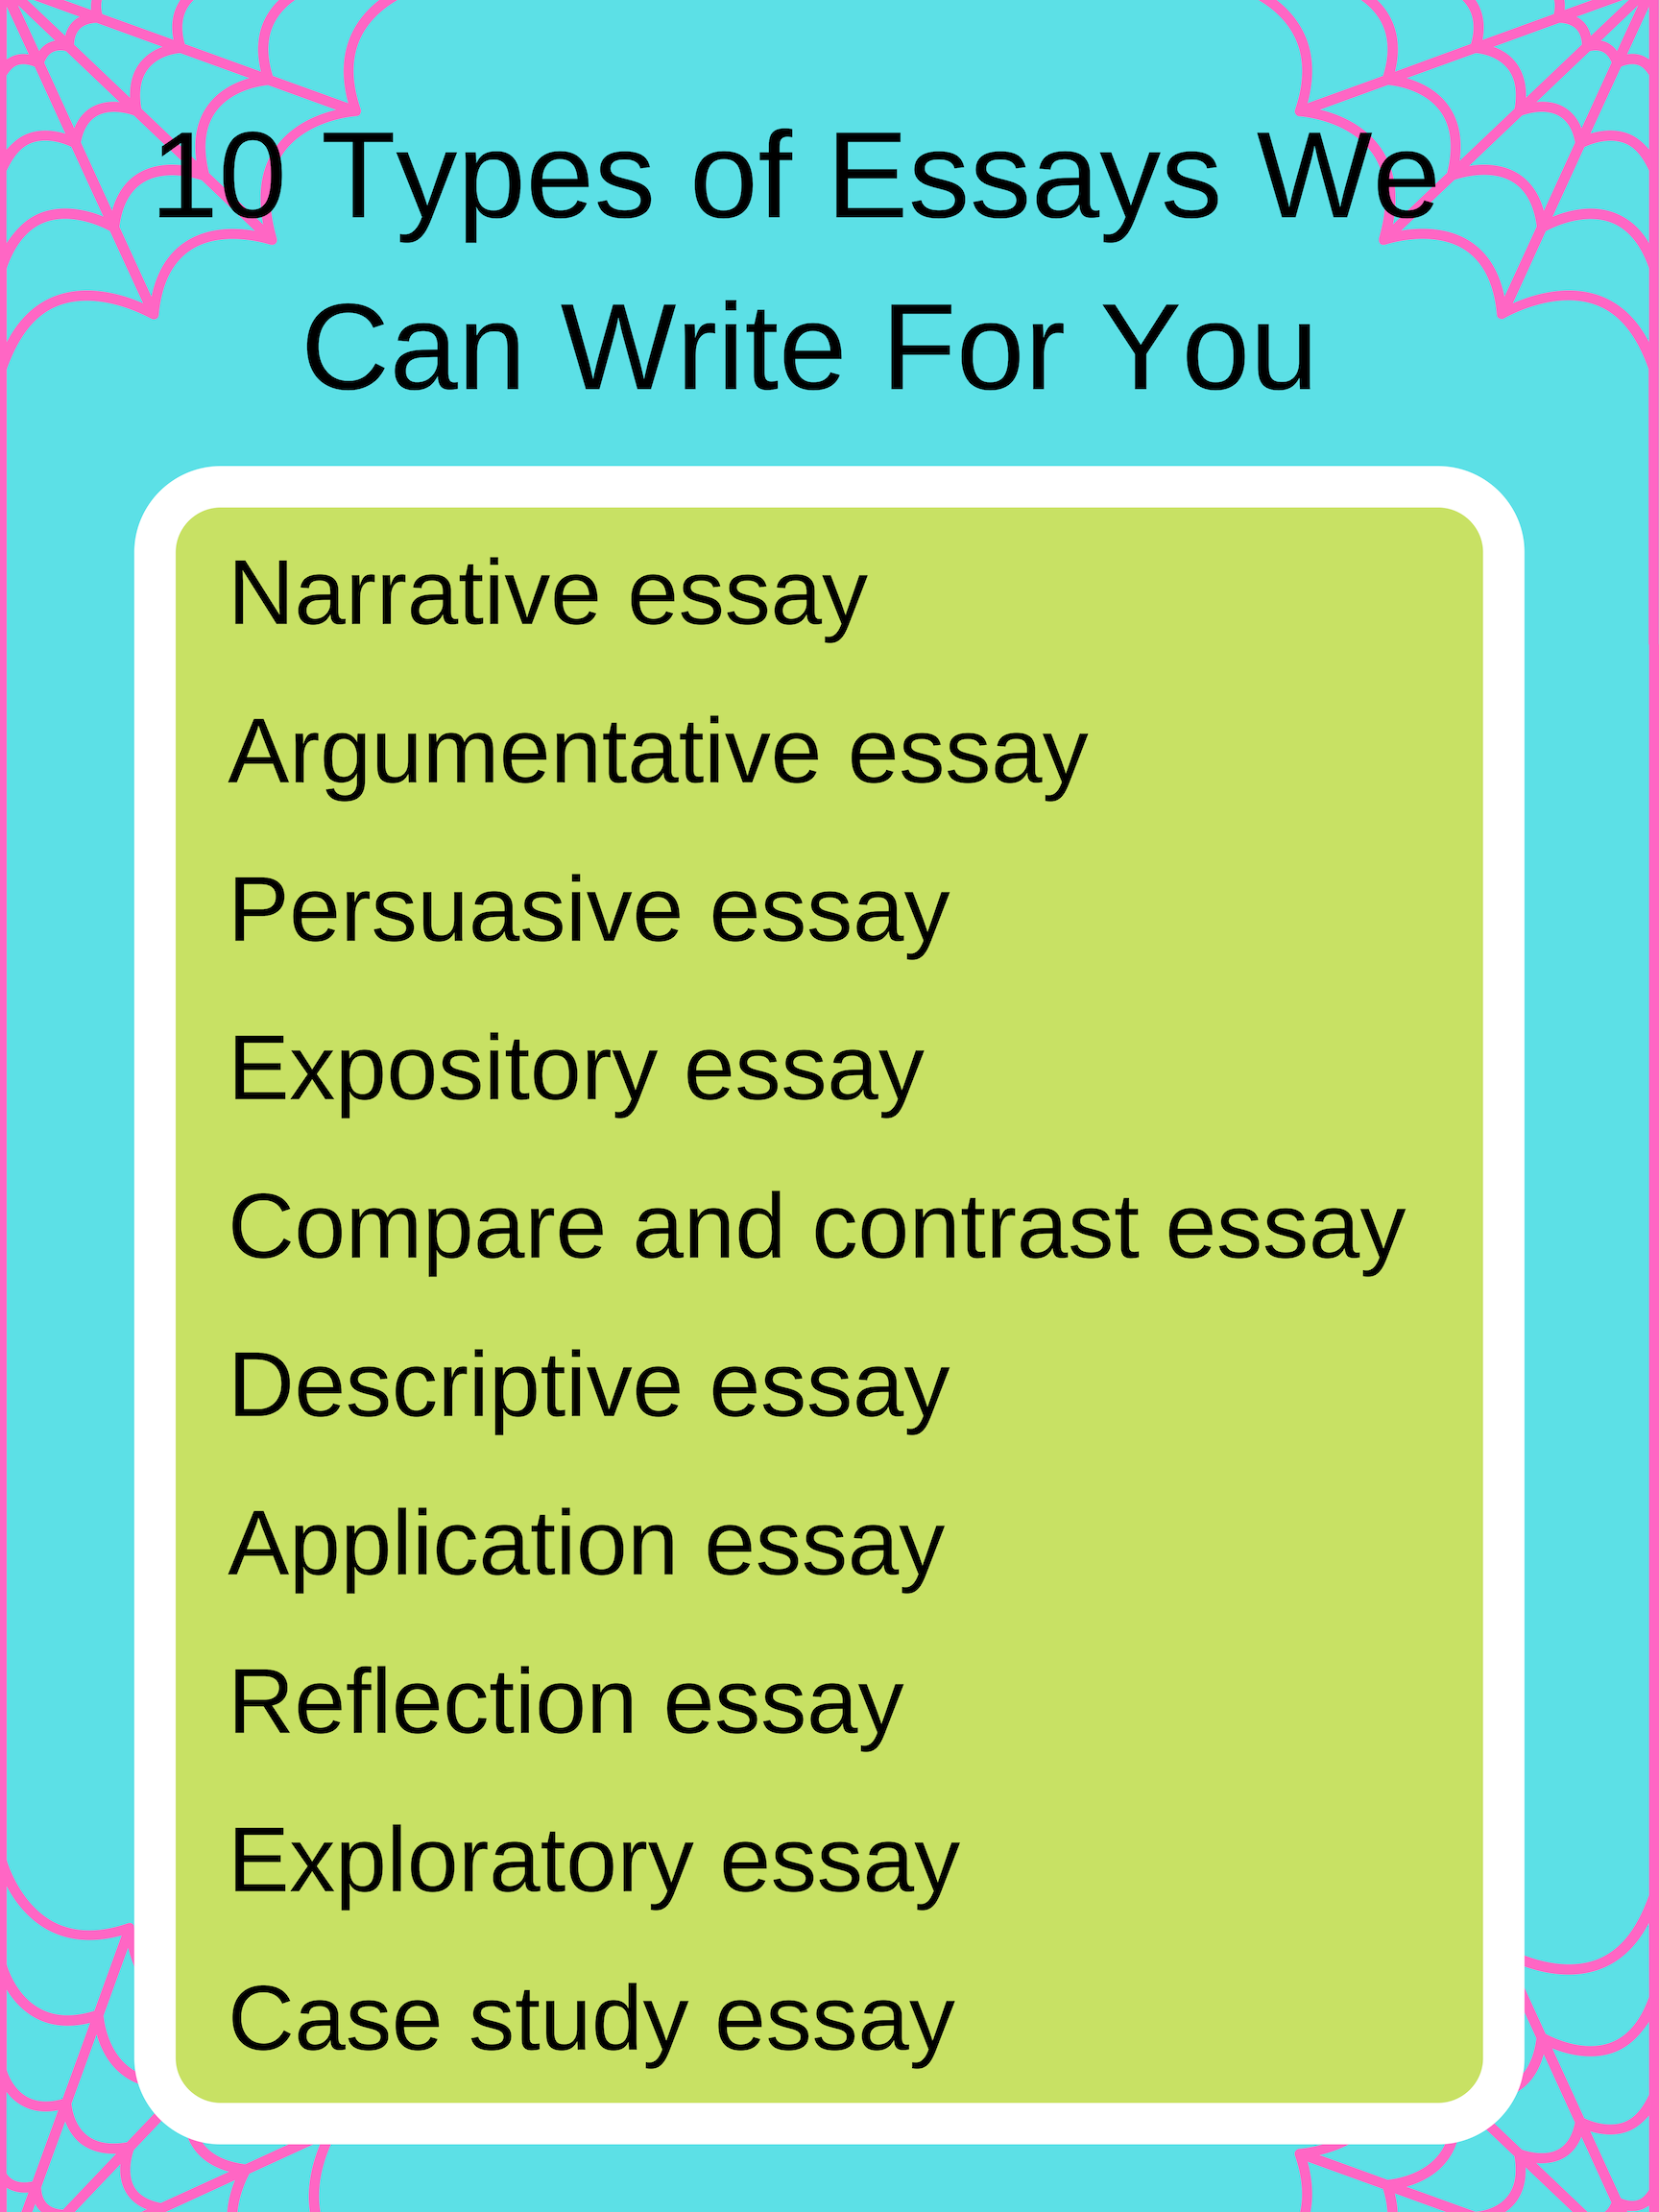 Type Of Essay We Can Write For You Huckleberry Finn Paraphrase